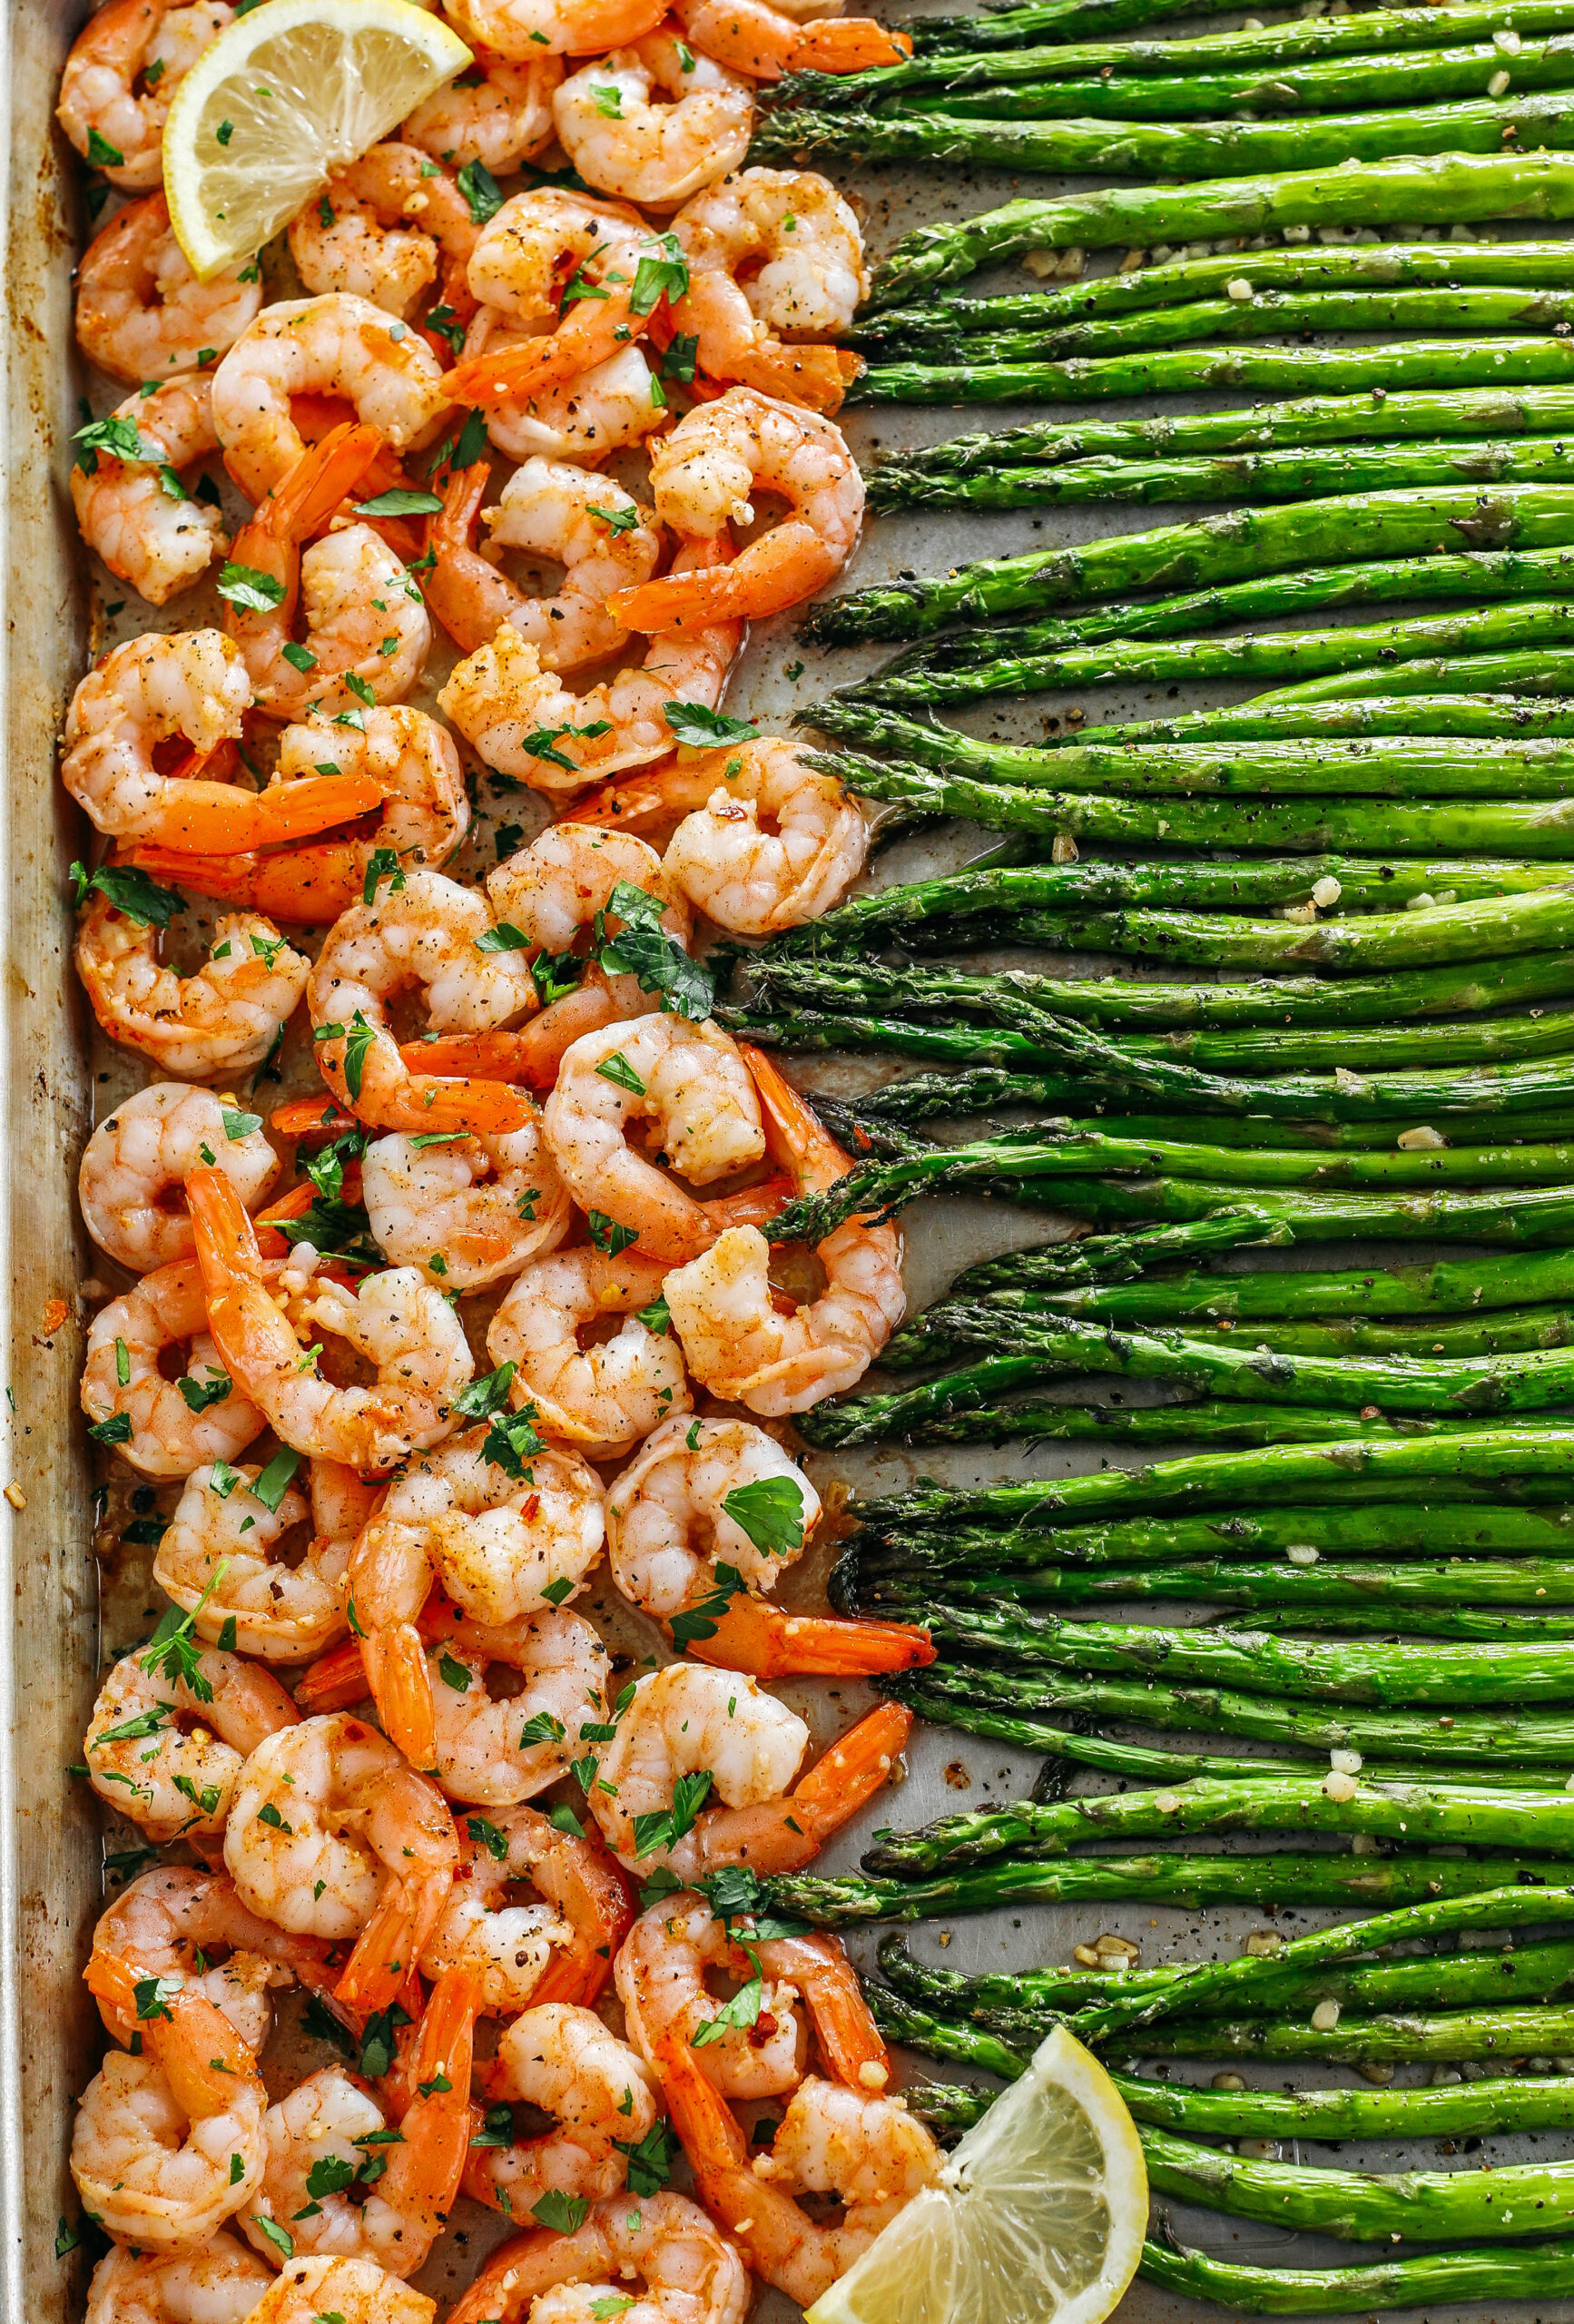 This Sheet Pan Lemon Garlic Shrimp and Asparagus is the perfect weeknight dinner loaded with flavor and easily made all in one pan in under 20 minutes!